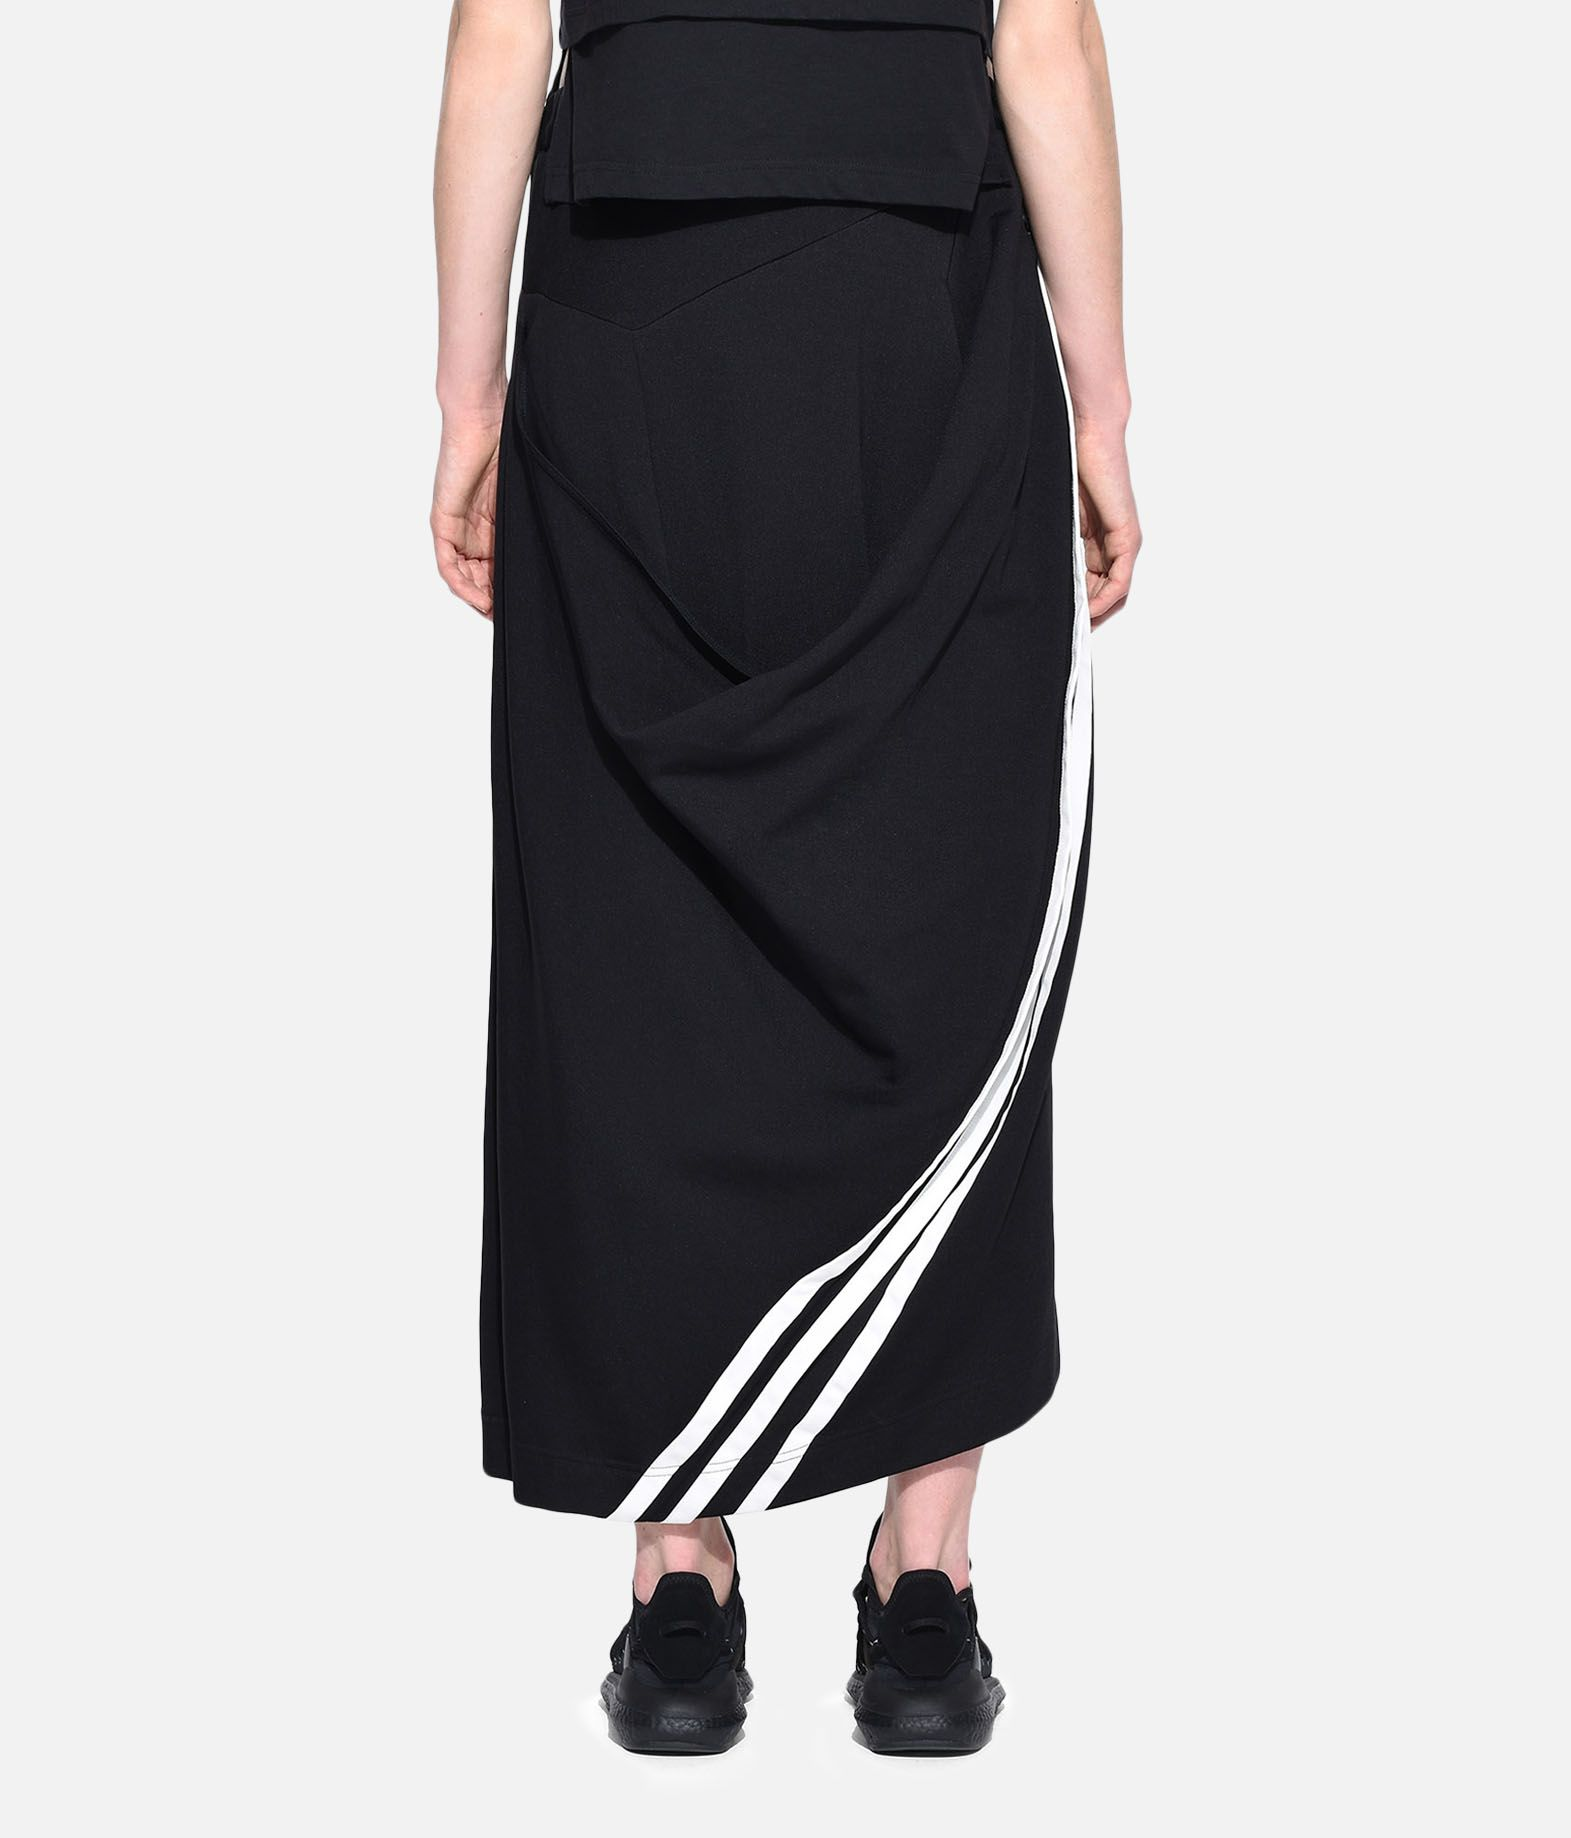 Y-3 Y-3 3-Stripes Drape Skirt Knee length skirt Woman d